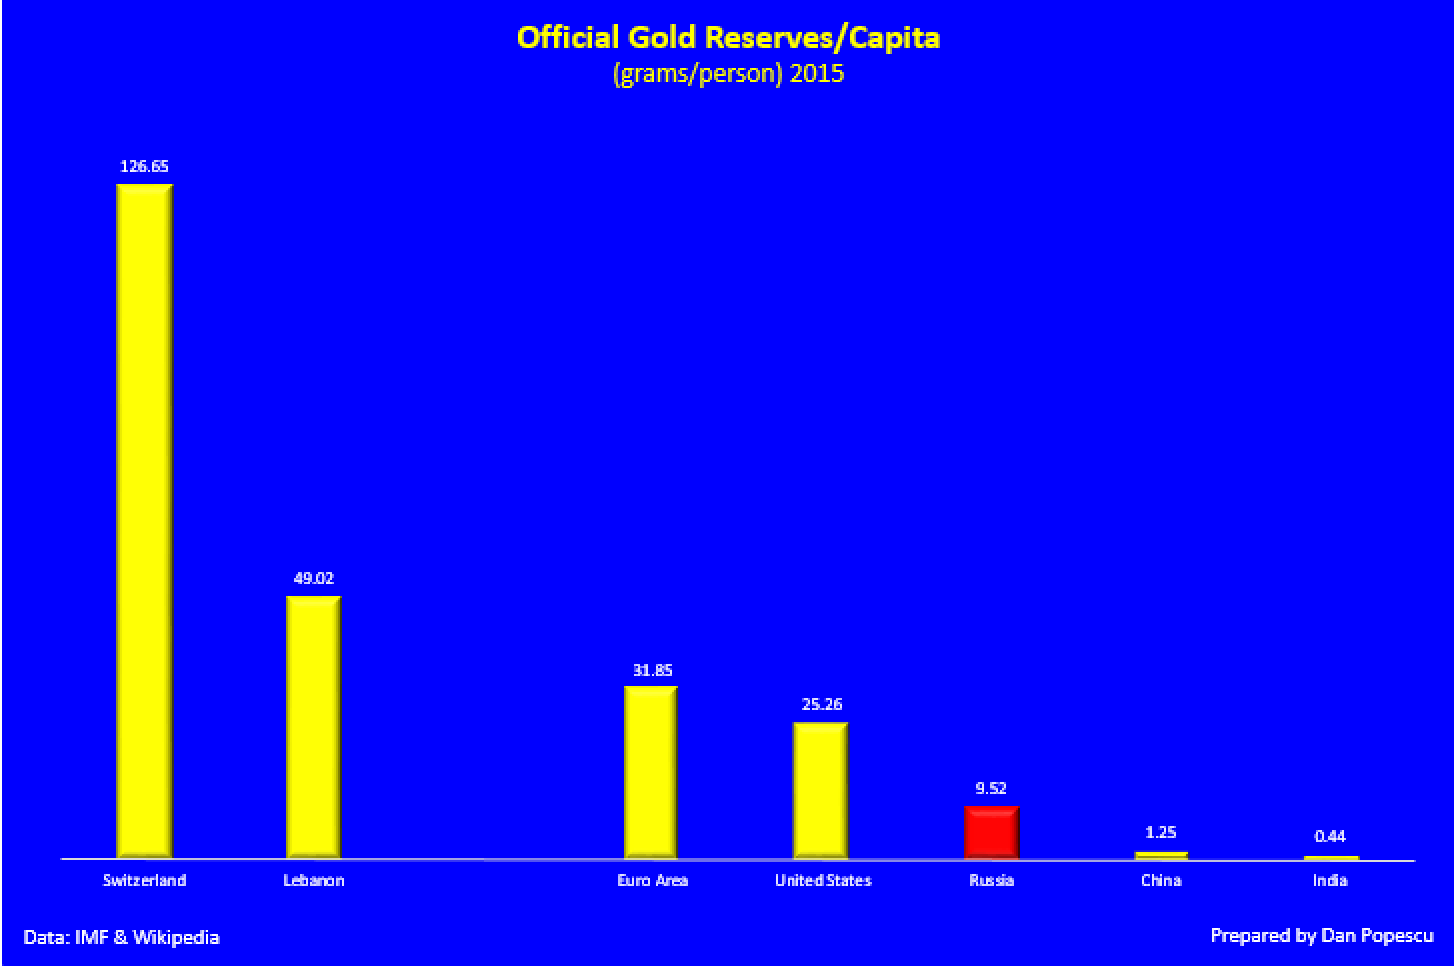 Official gold reserves per capita